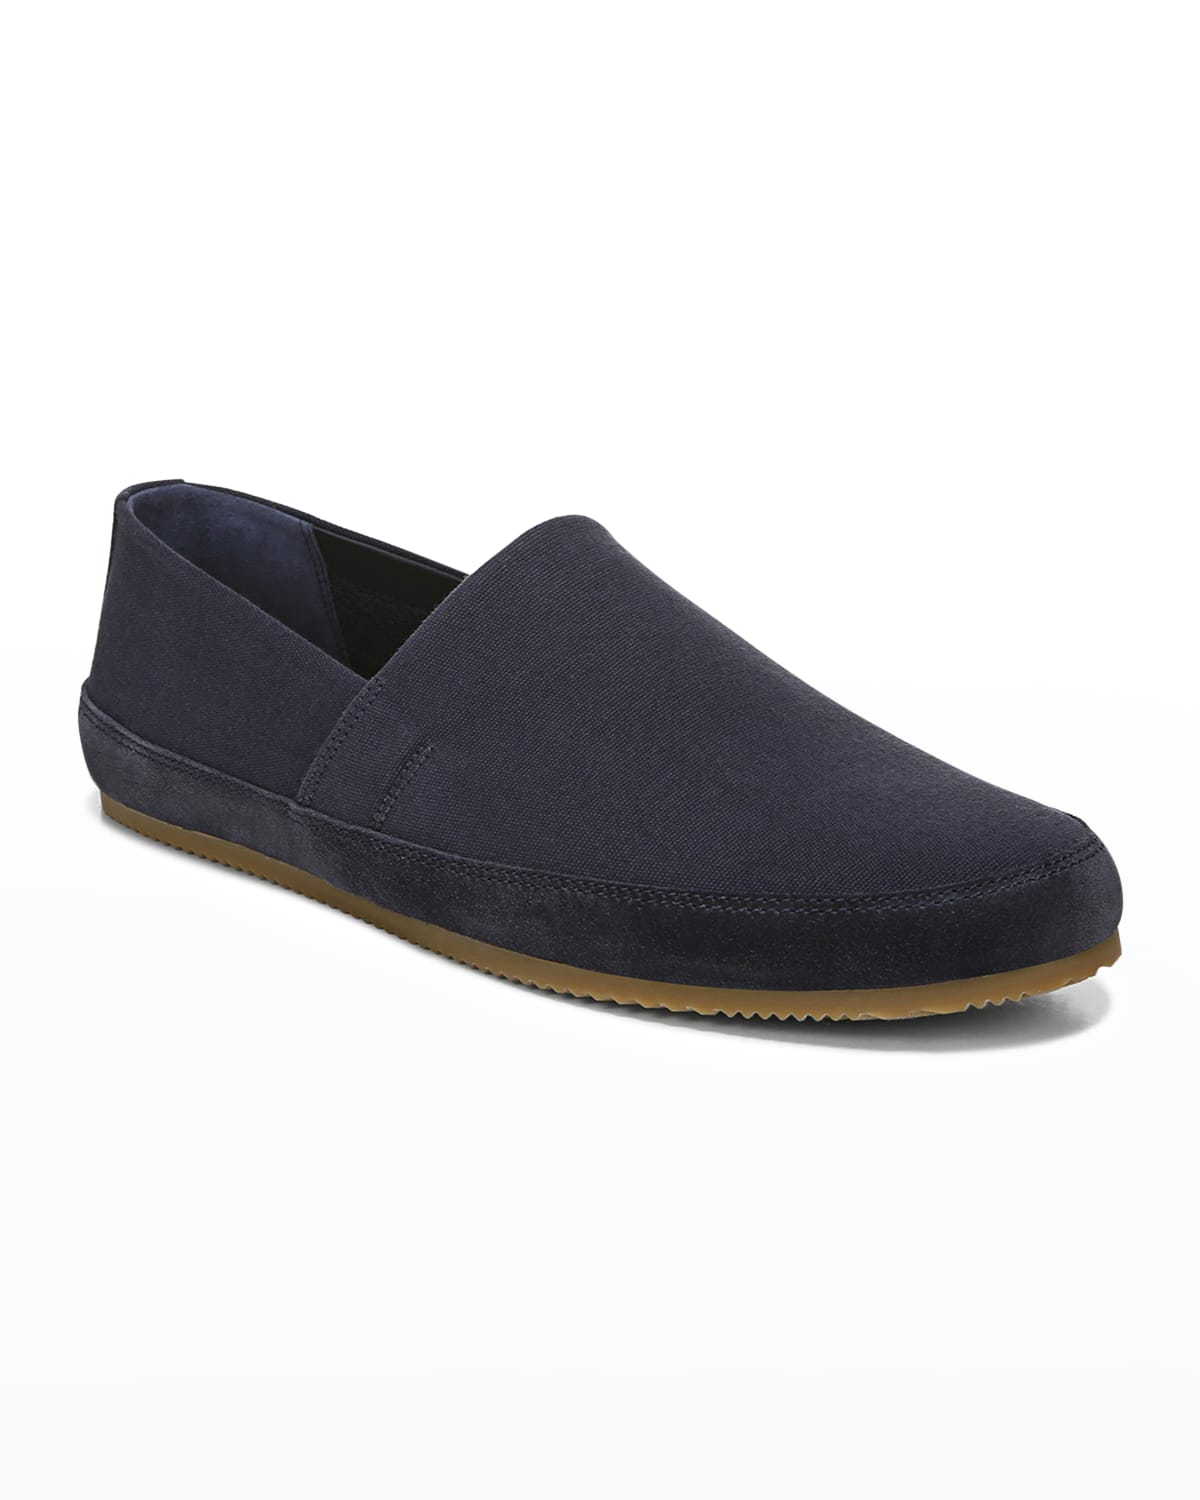 Men's Atlee Canvas & Suede Slip-On Shoes